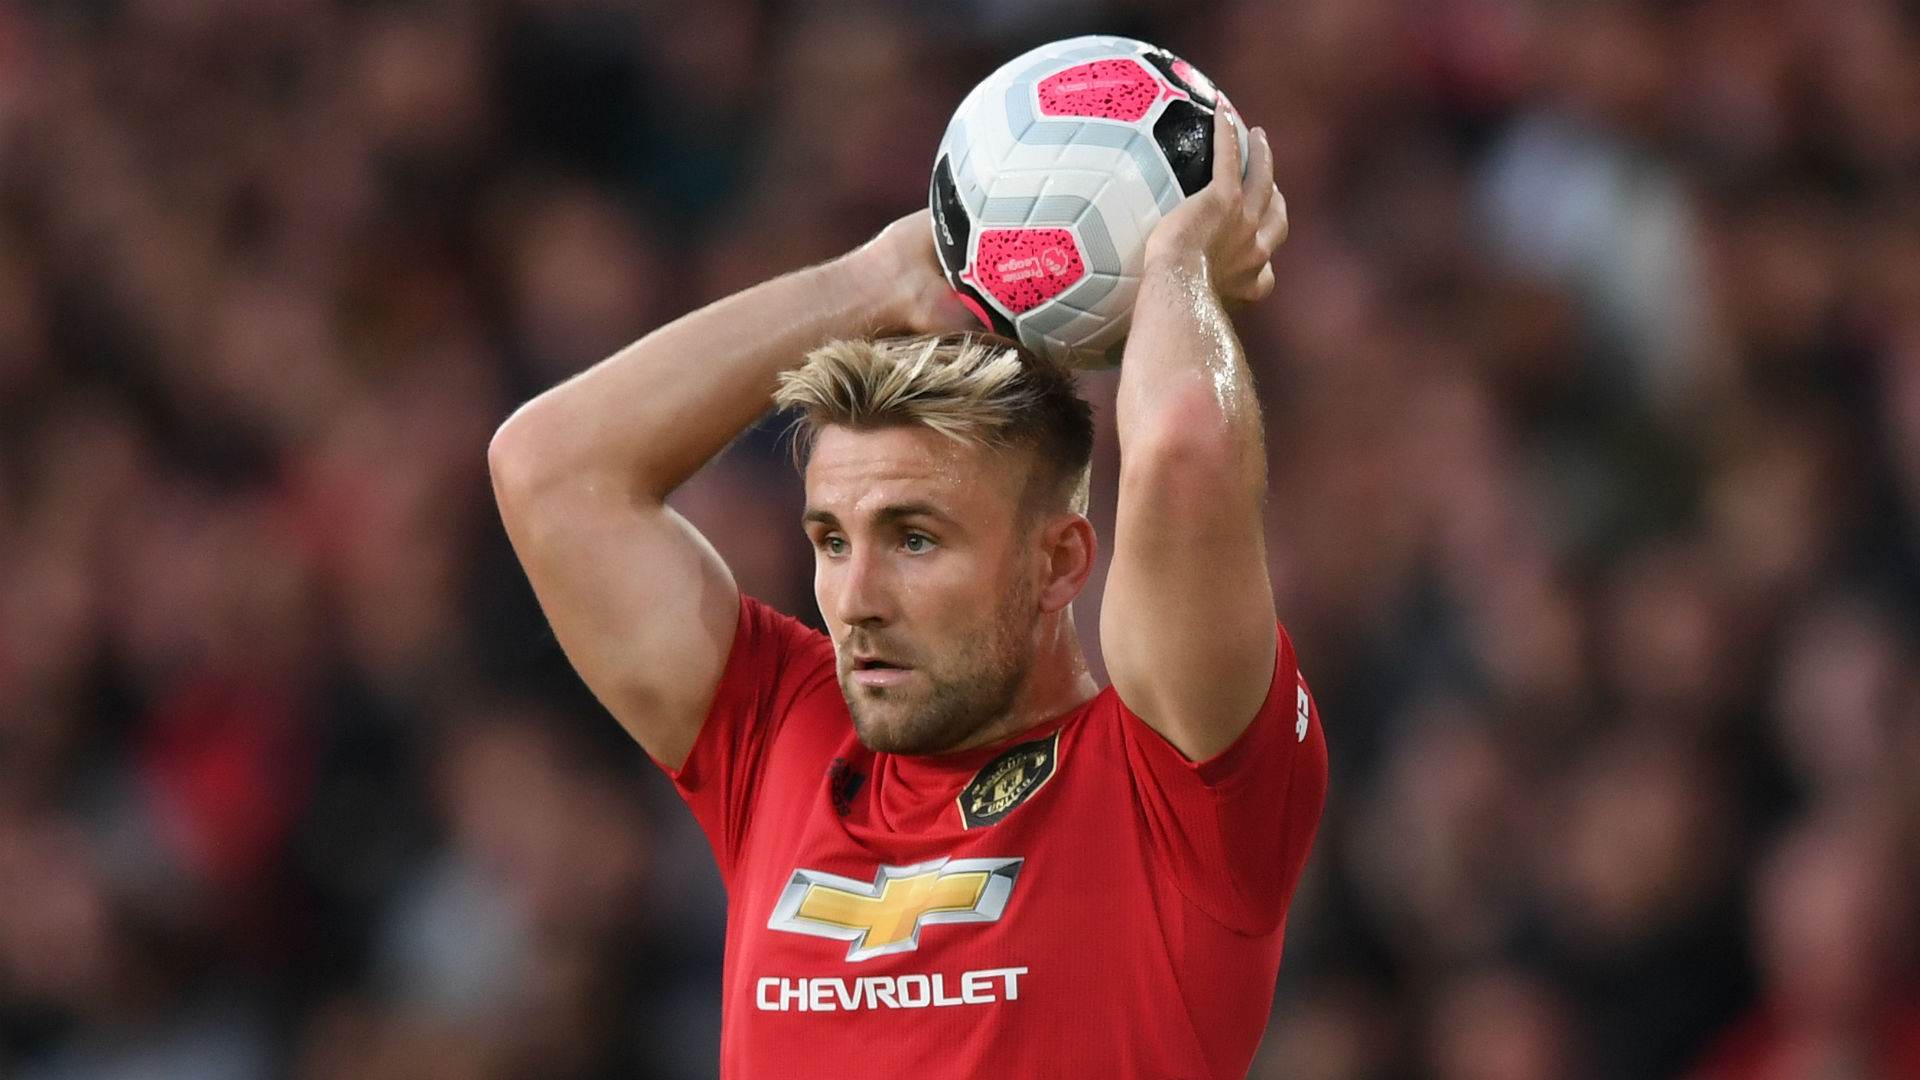 Season should be voided if Premier League cannot restart, says Shaw